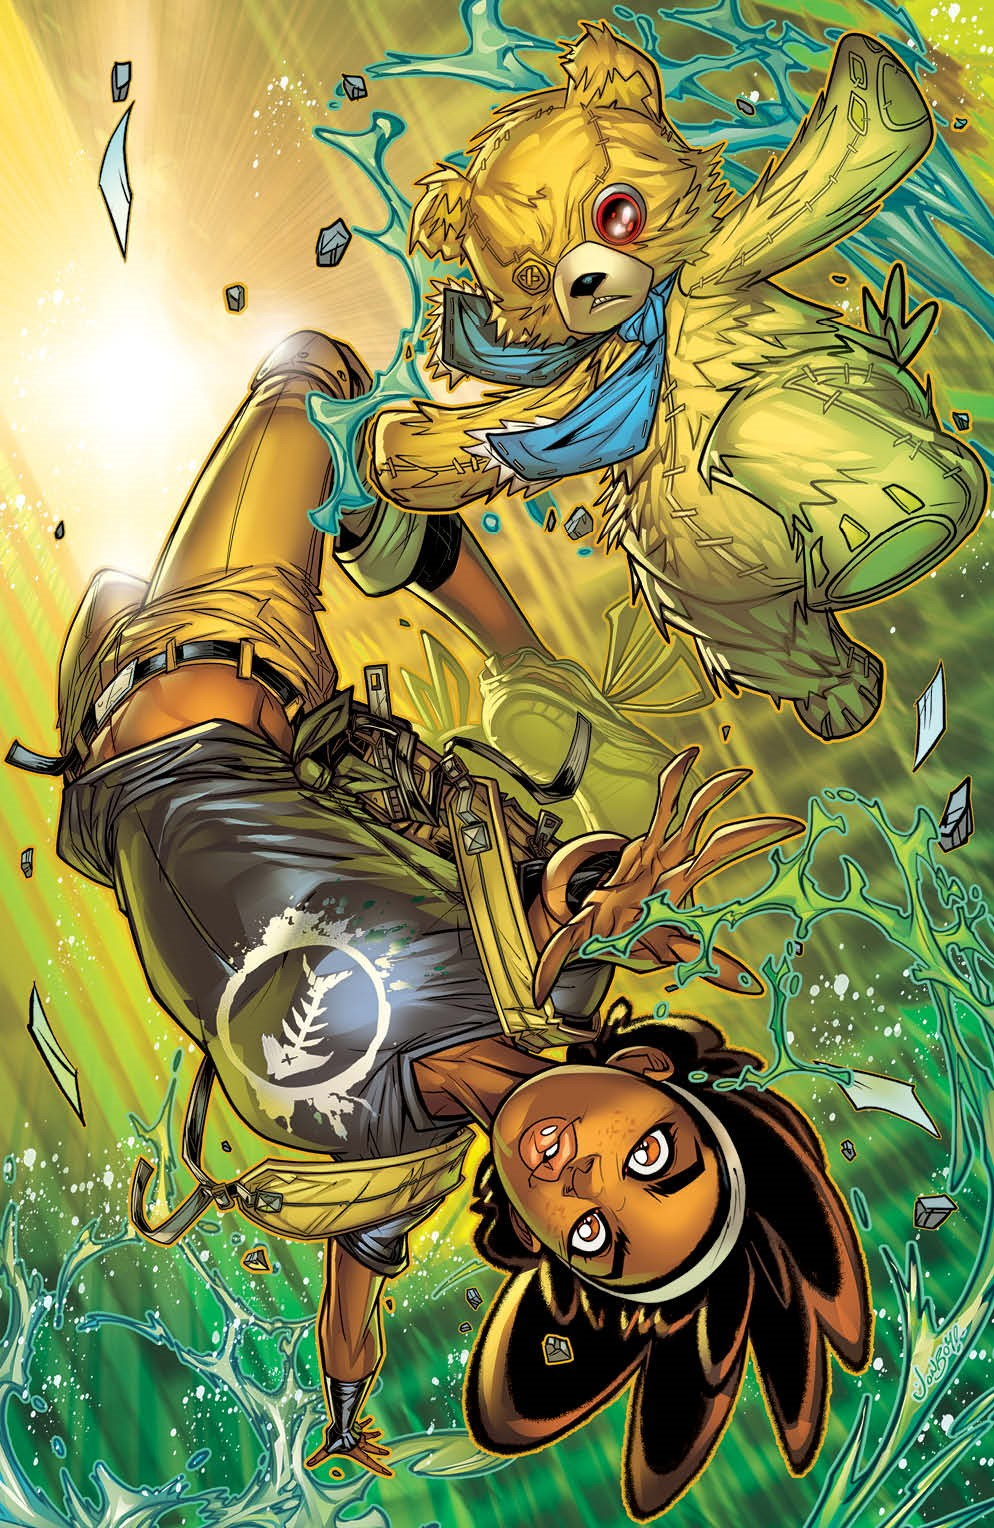 Eve_004_Cover_C_Variant_Undressed ComicList: BOOM! Studios New Releases for 08/11/2021